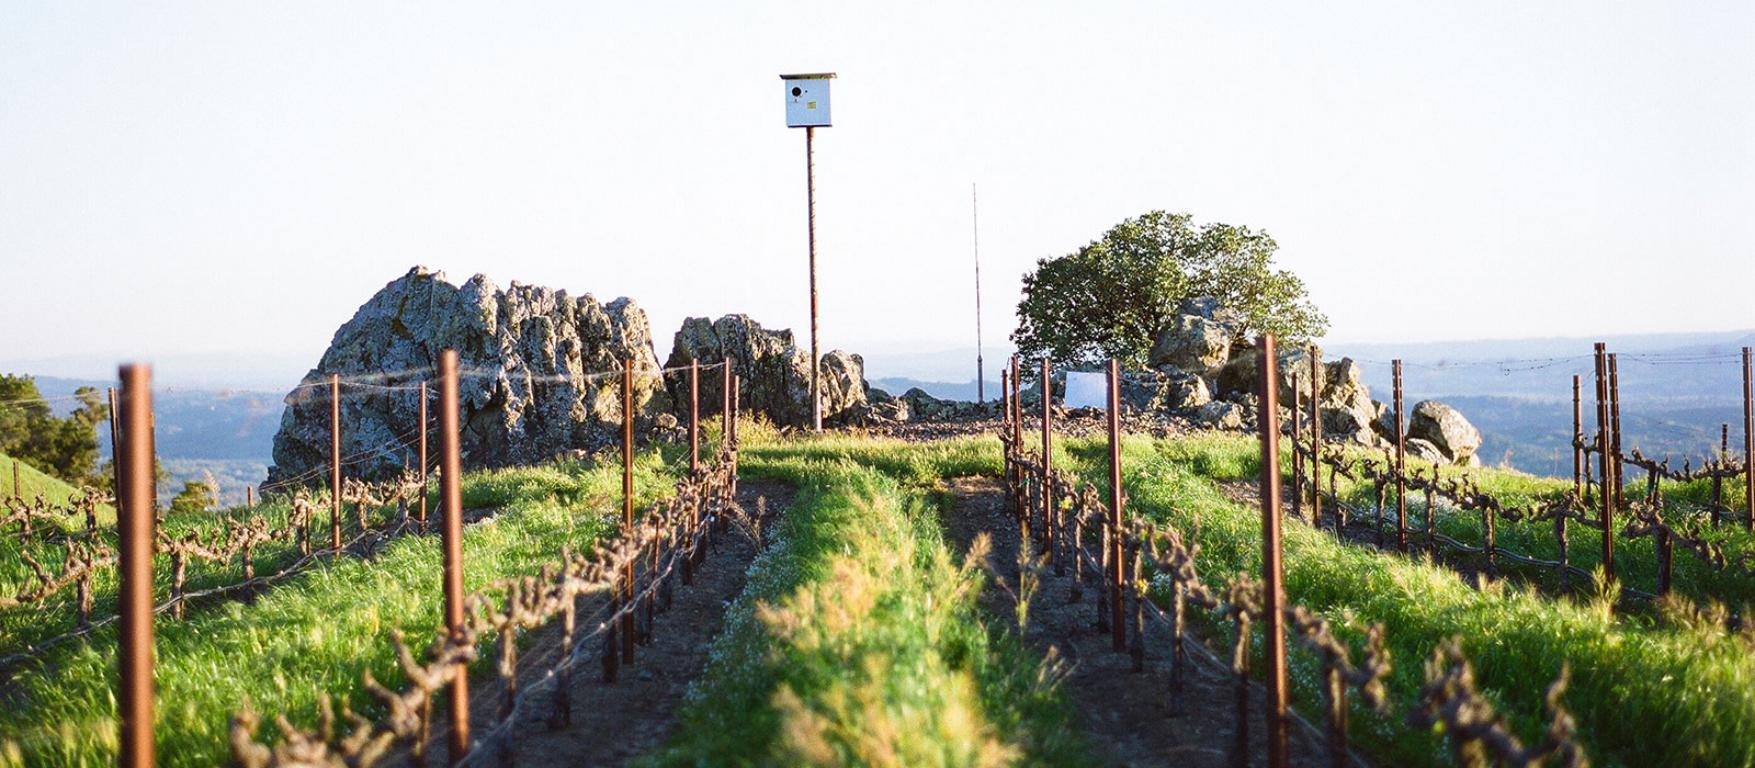 Sustainably farmed vineyards at Kendall-Jackson.